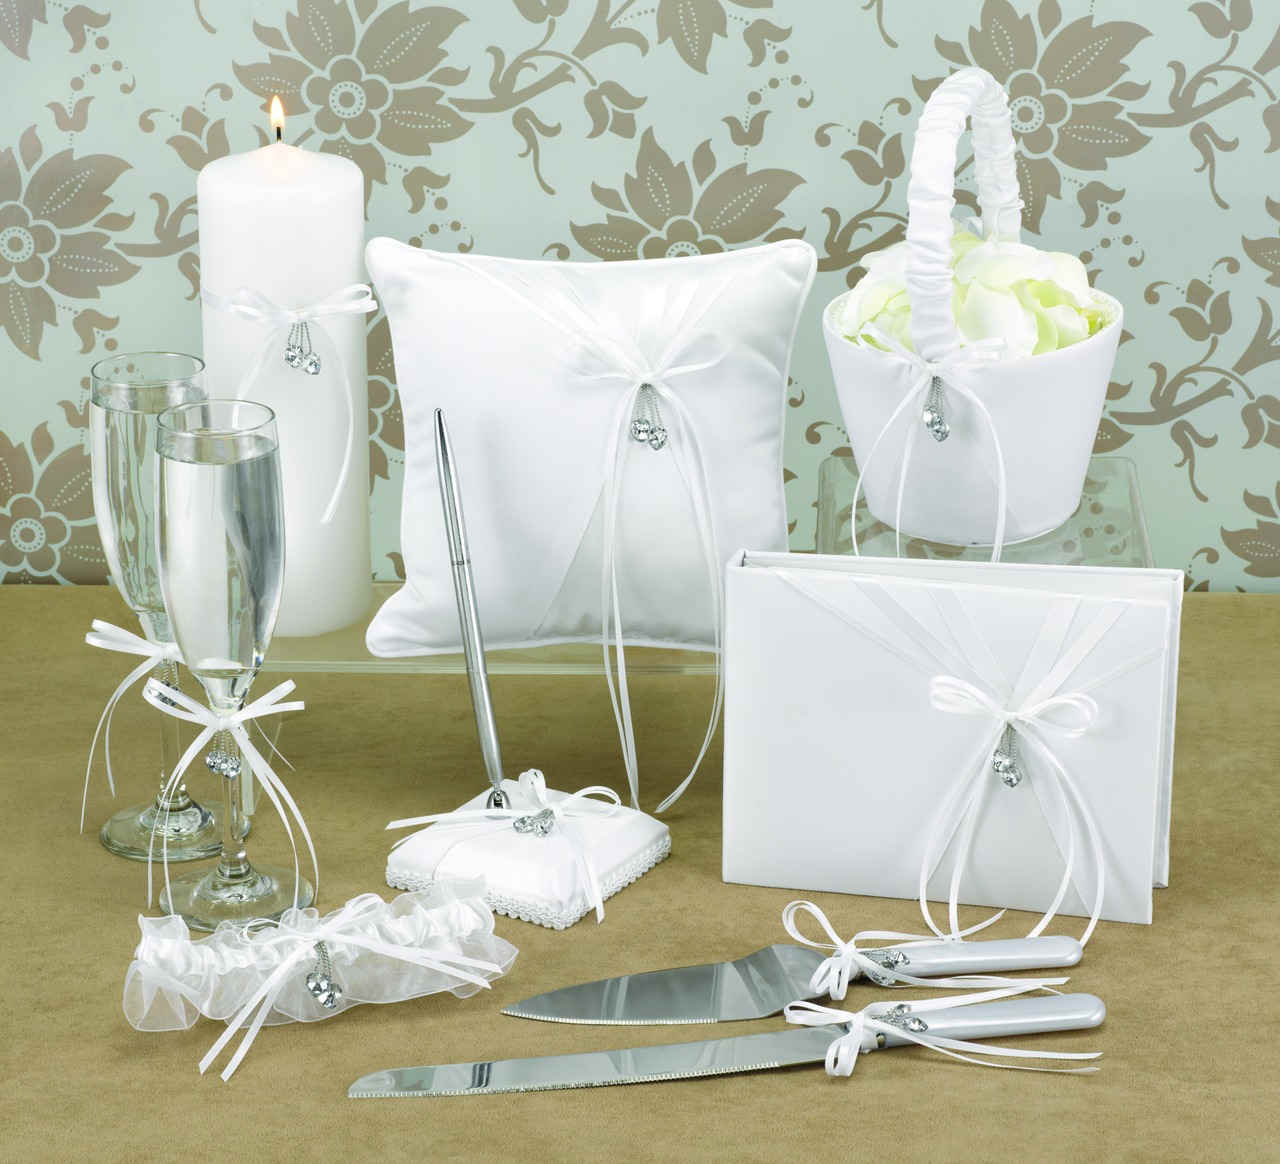 Wedding supplies romantic decoration up wedding supplies at the 10 reasons to shop sams club cakes for your wedding junglespirit Gallery